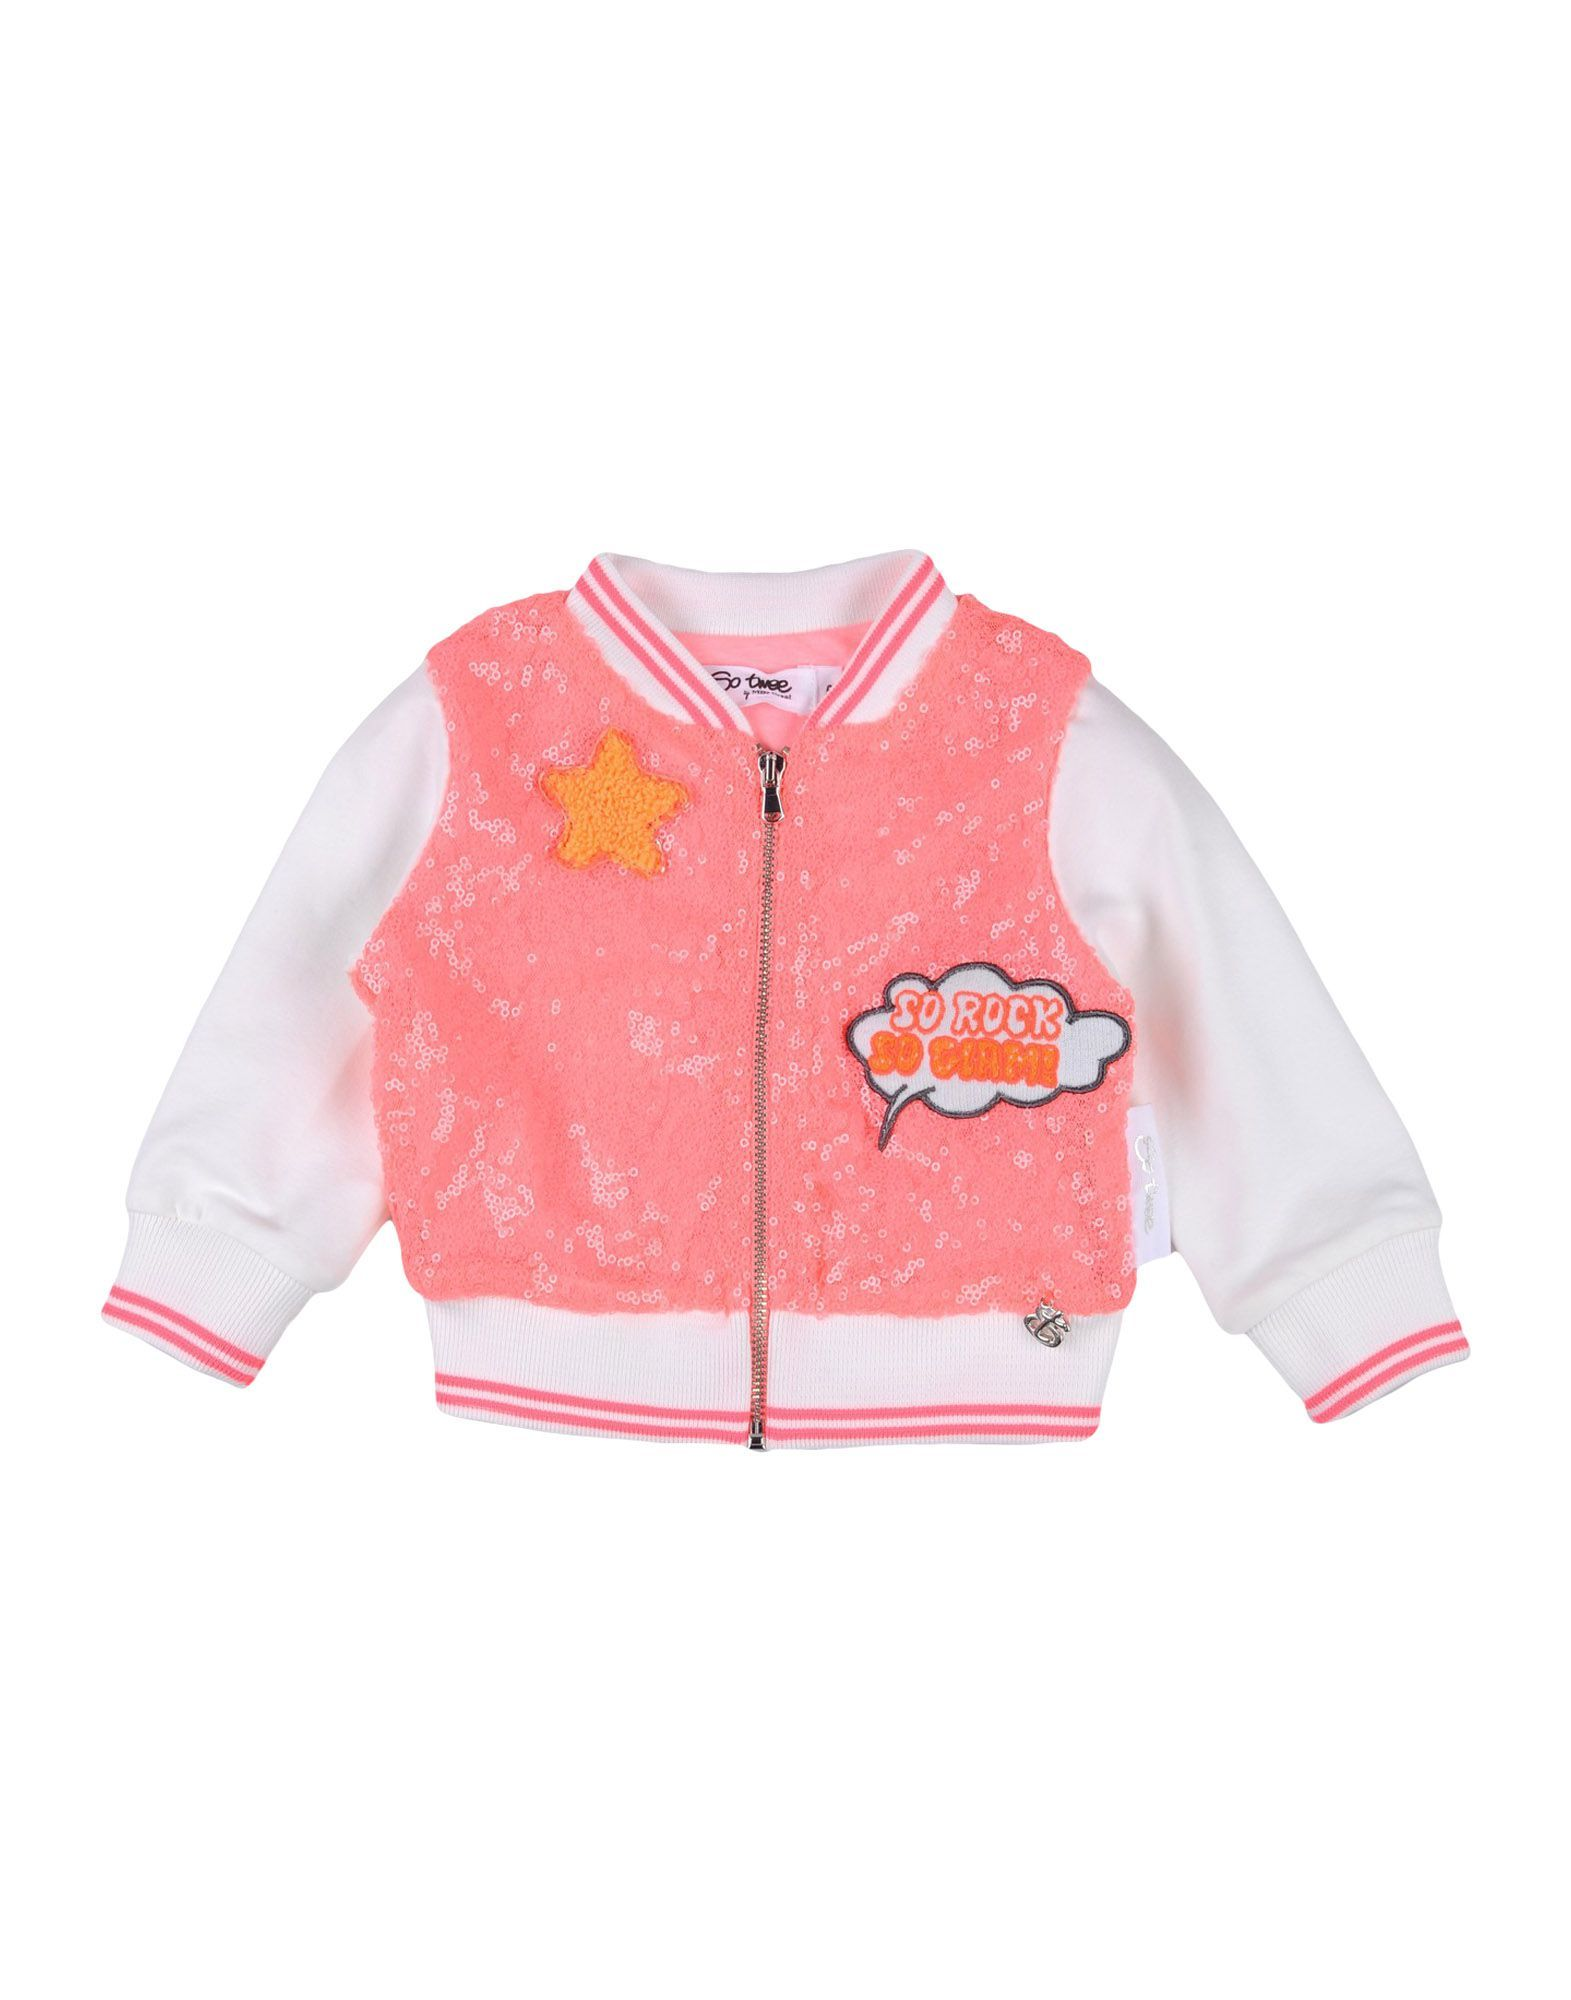 TOPWEAR Girl So Twee By Miss Grant Coral Polyester